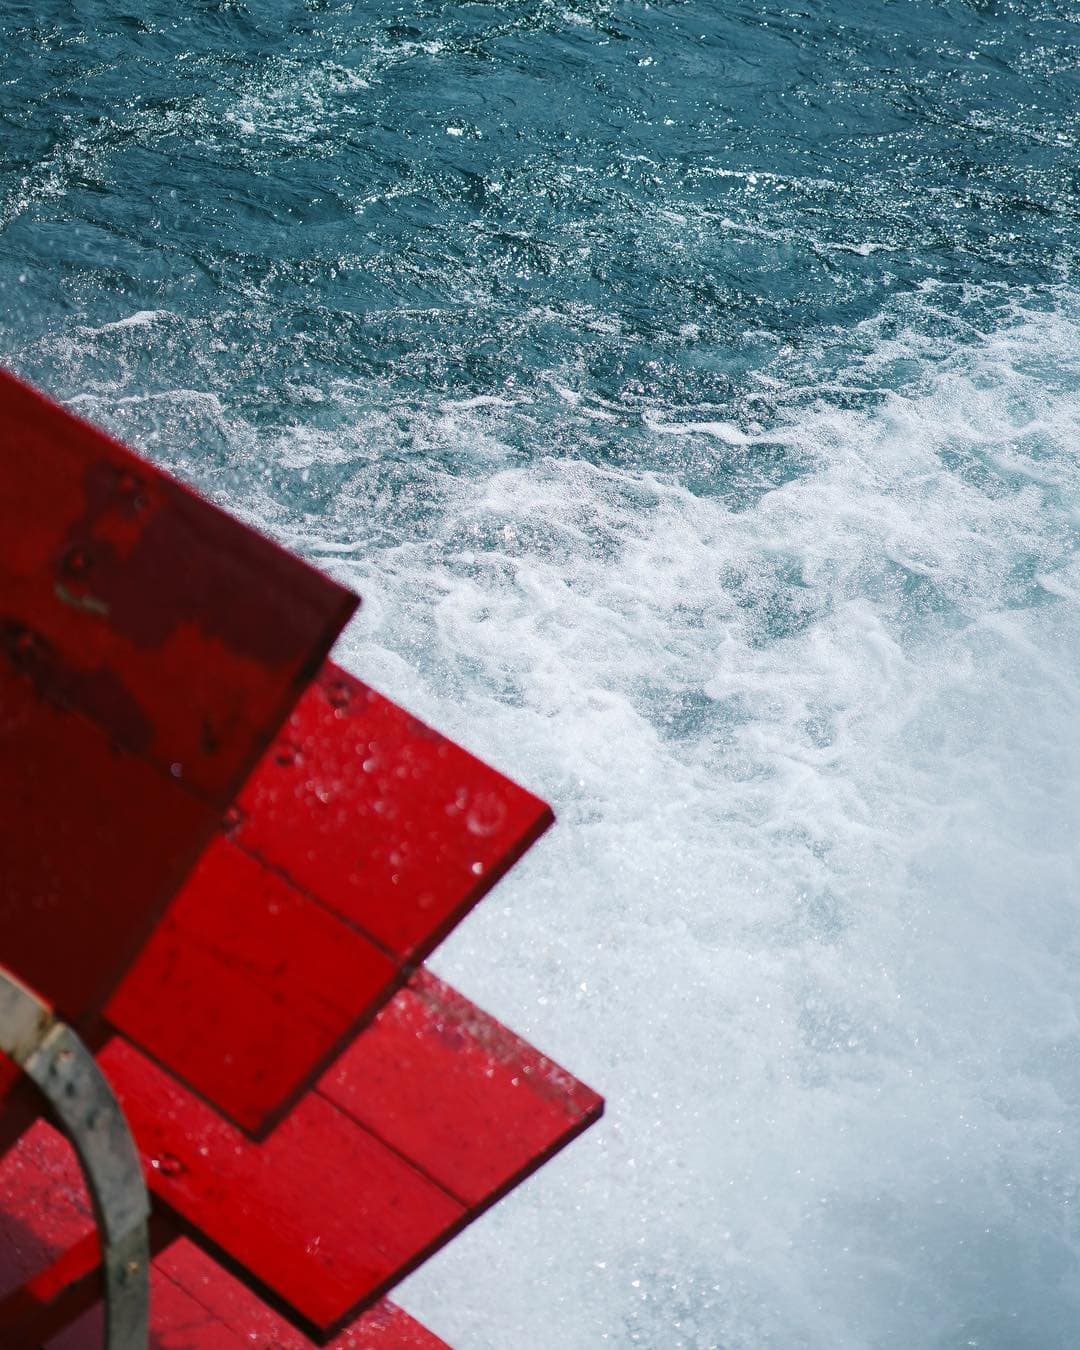 red wooden paddles on a boat with lots of water foaming in its trail